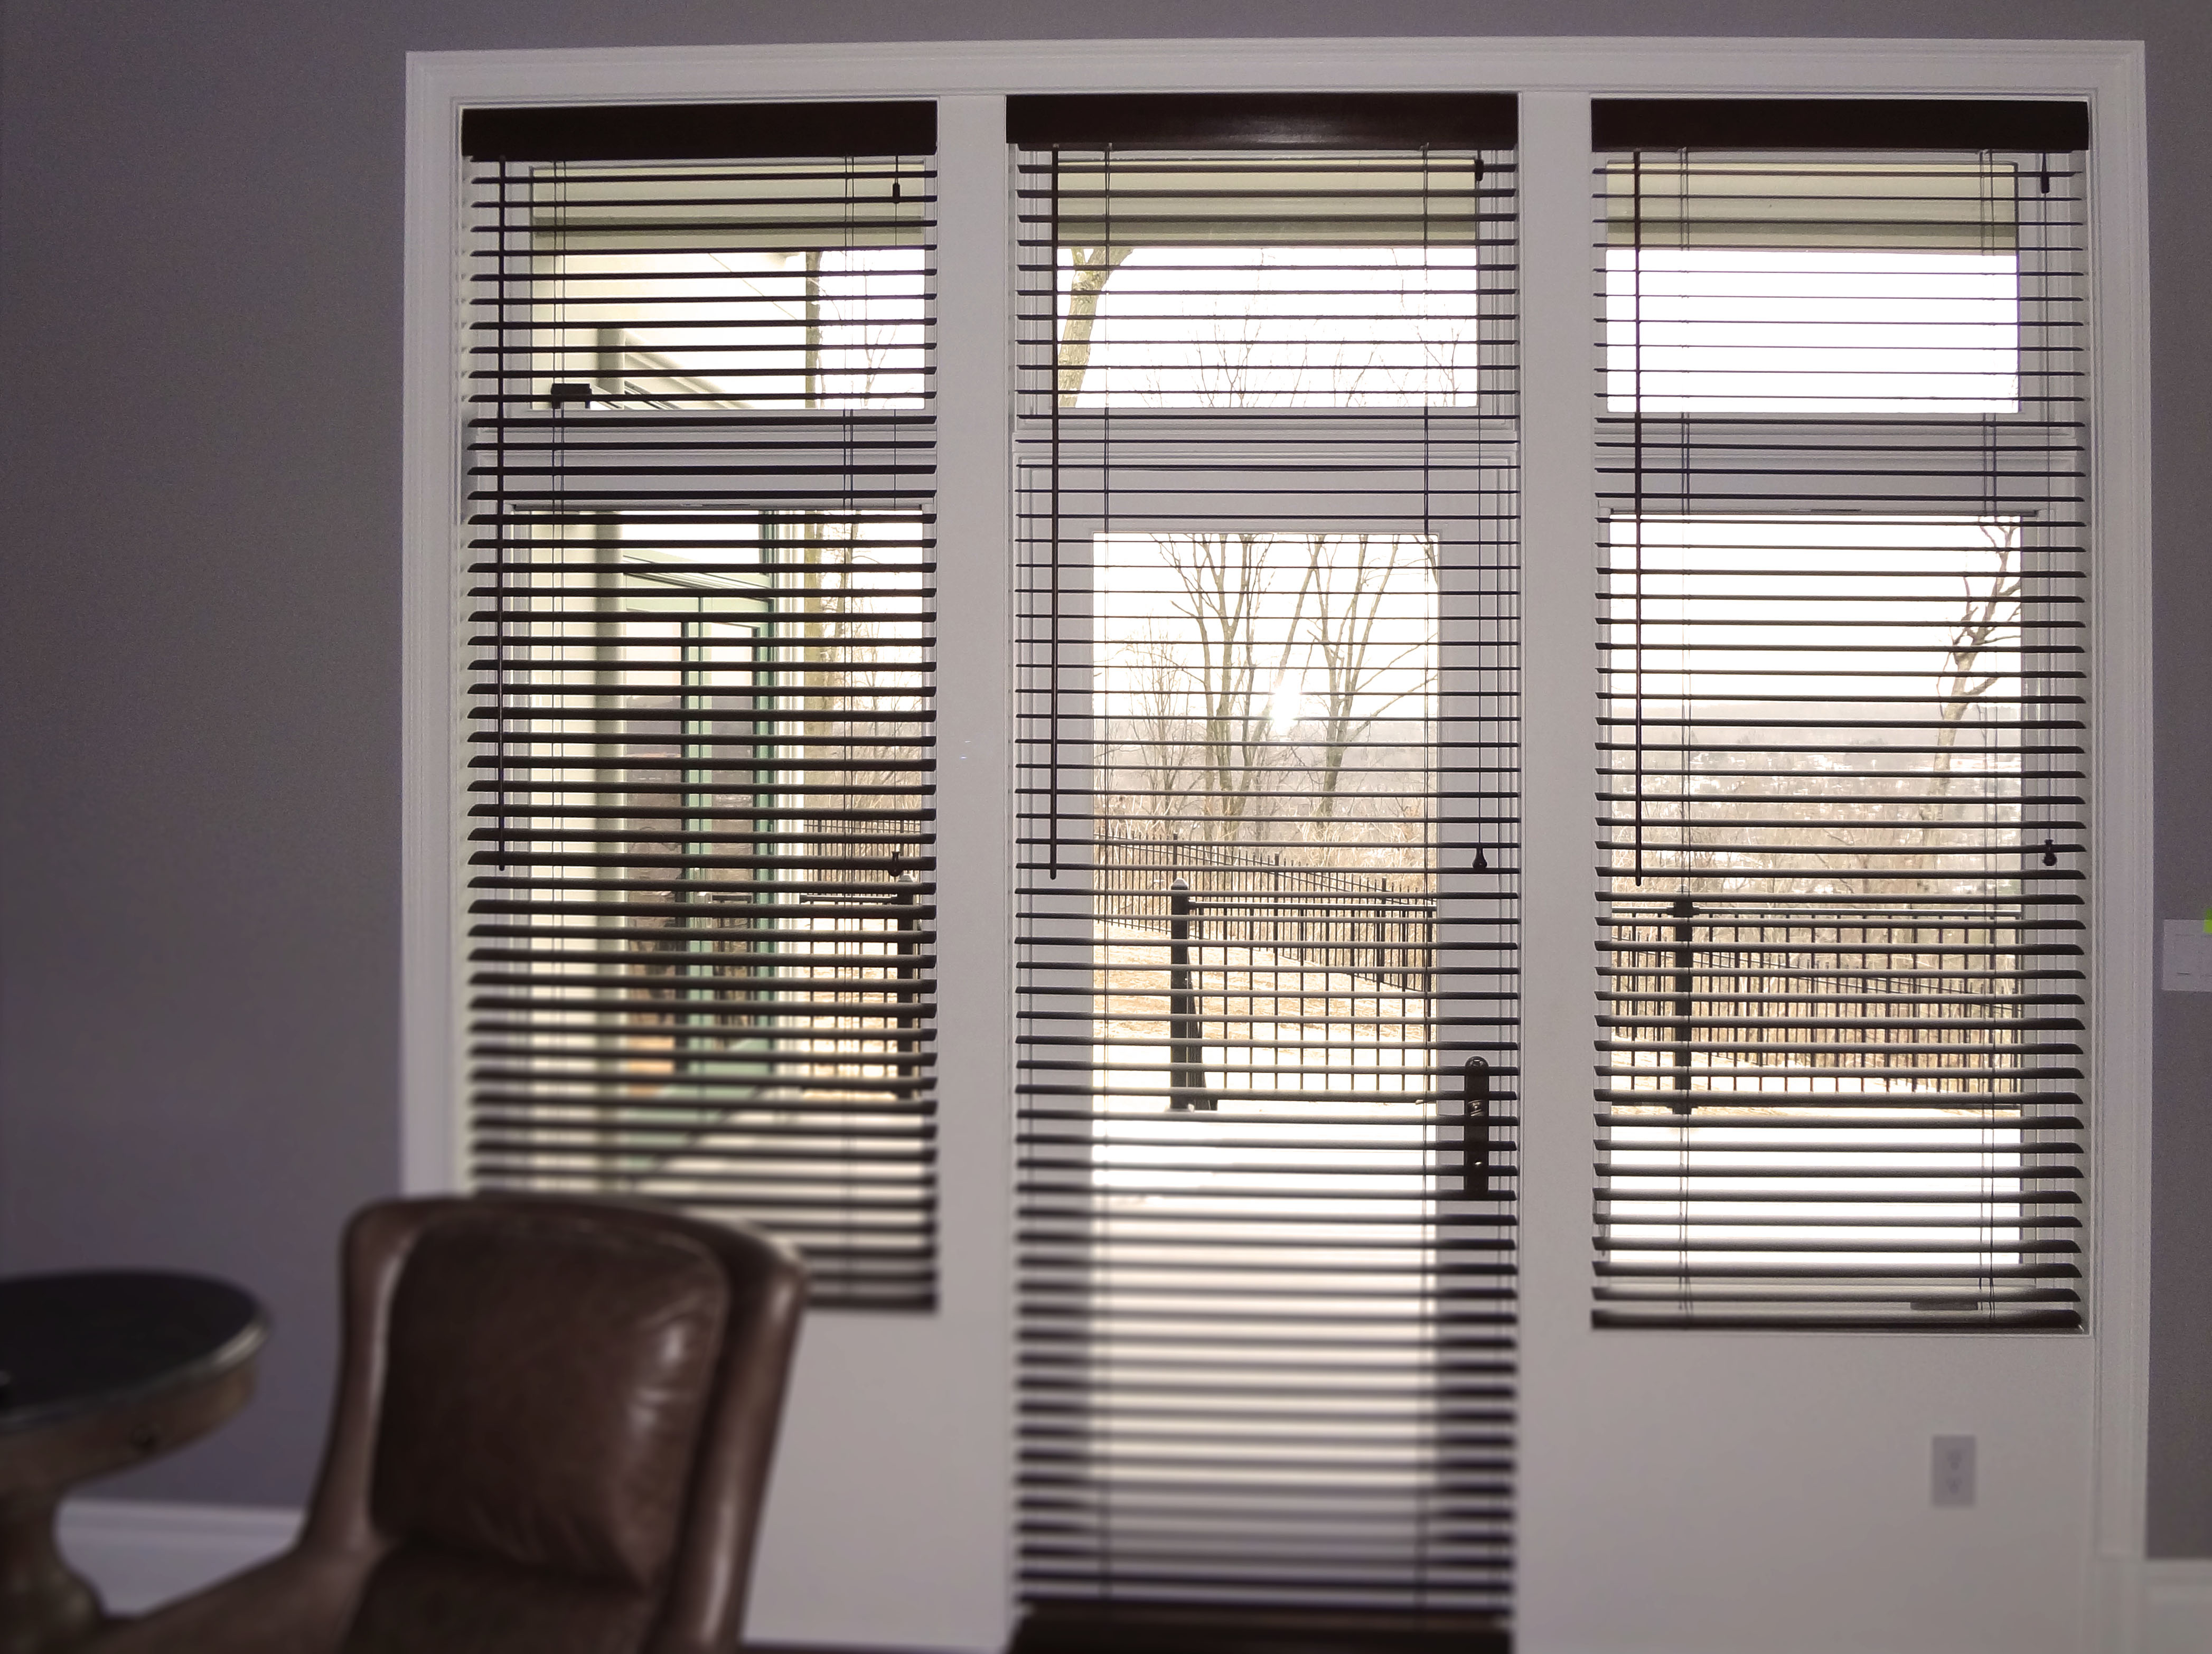 blinds size inspirational auto costco window amazing appliances unique full of